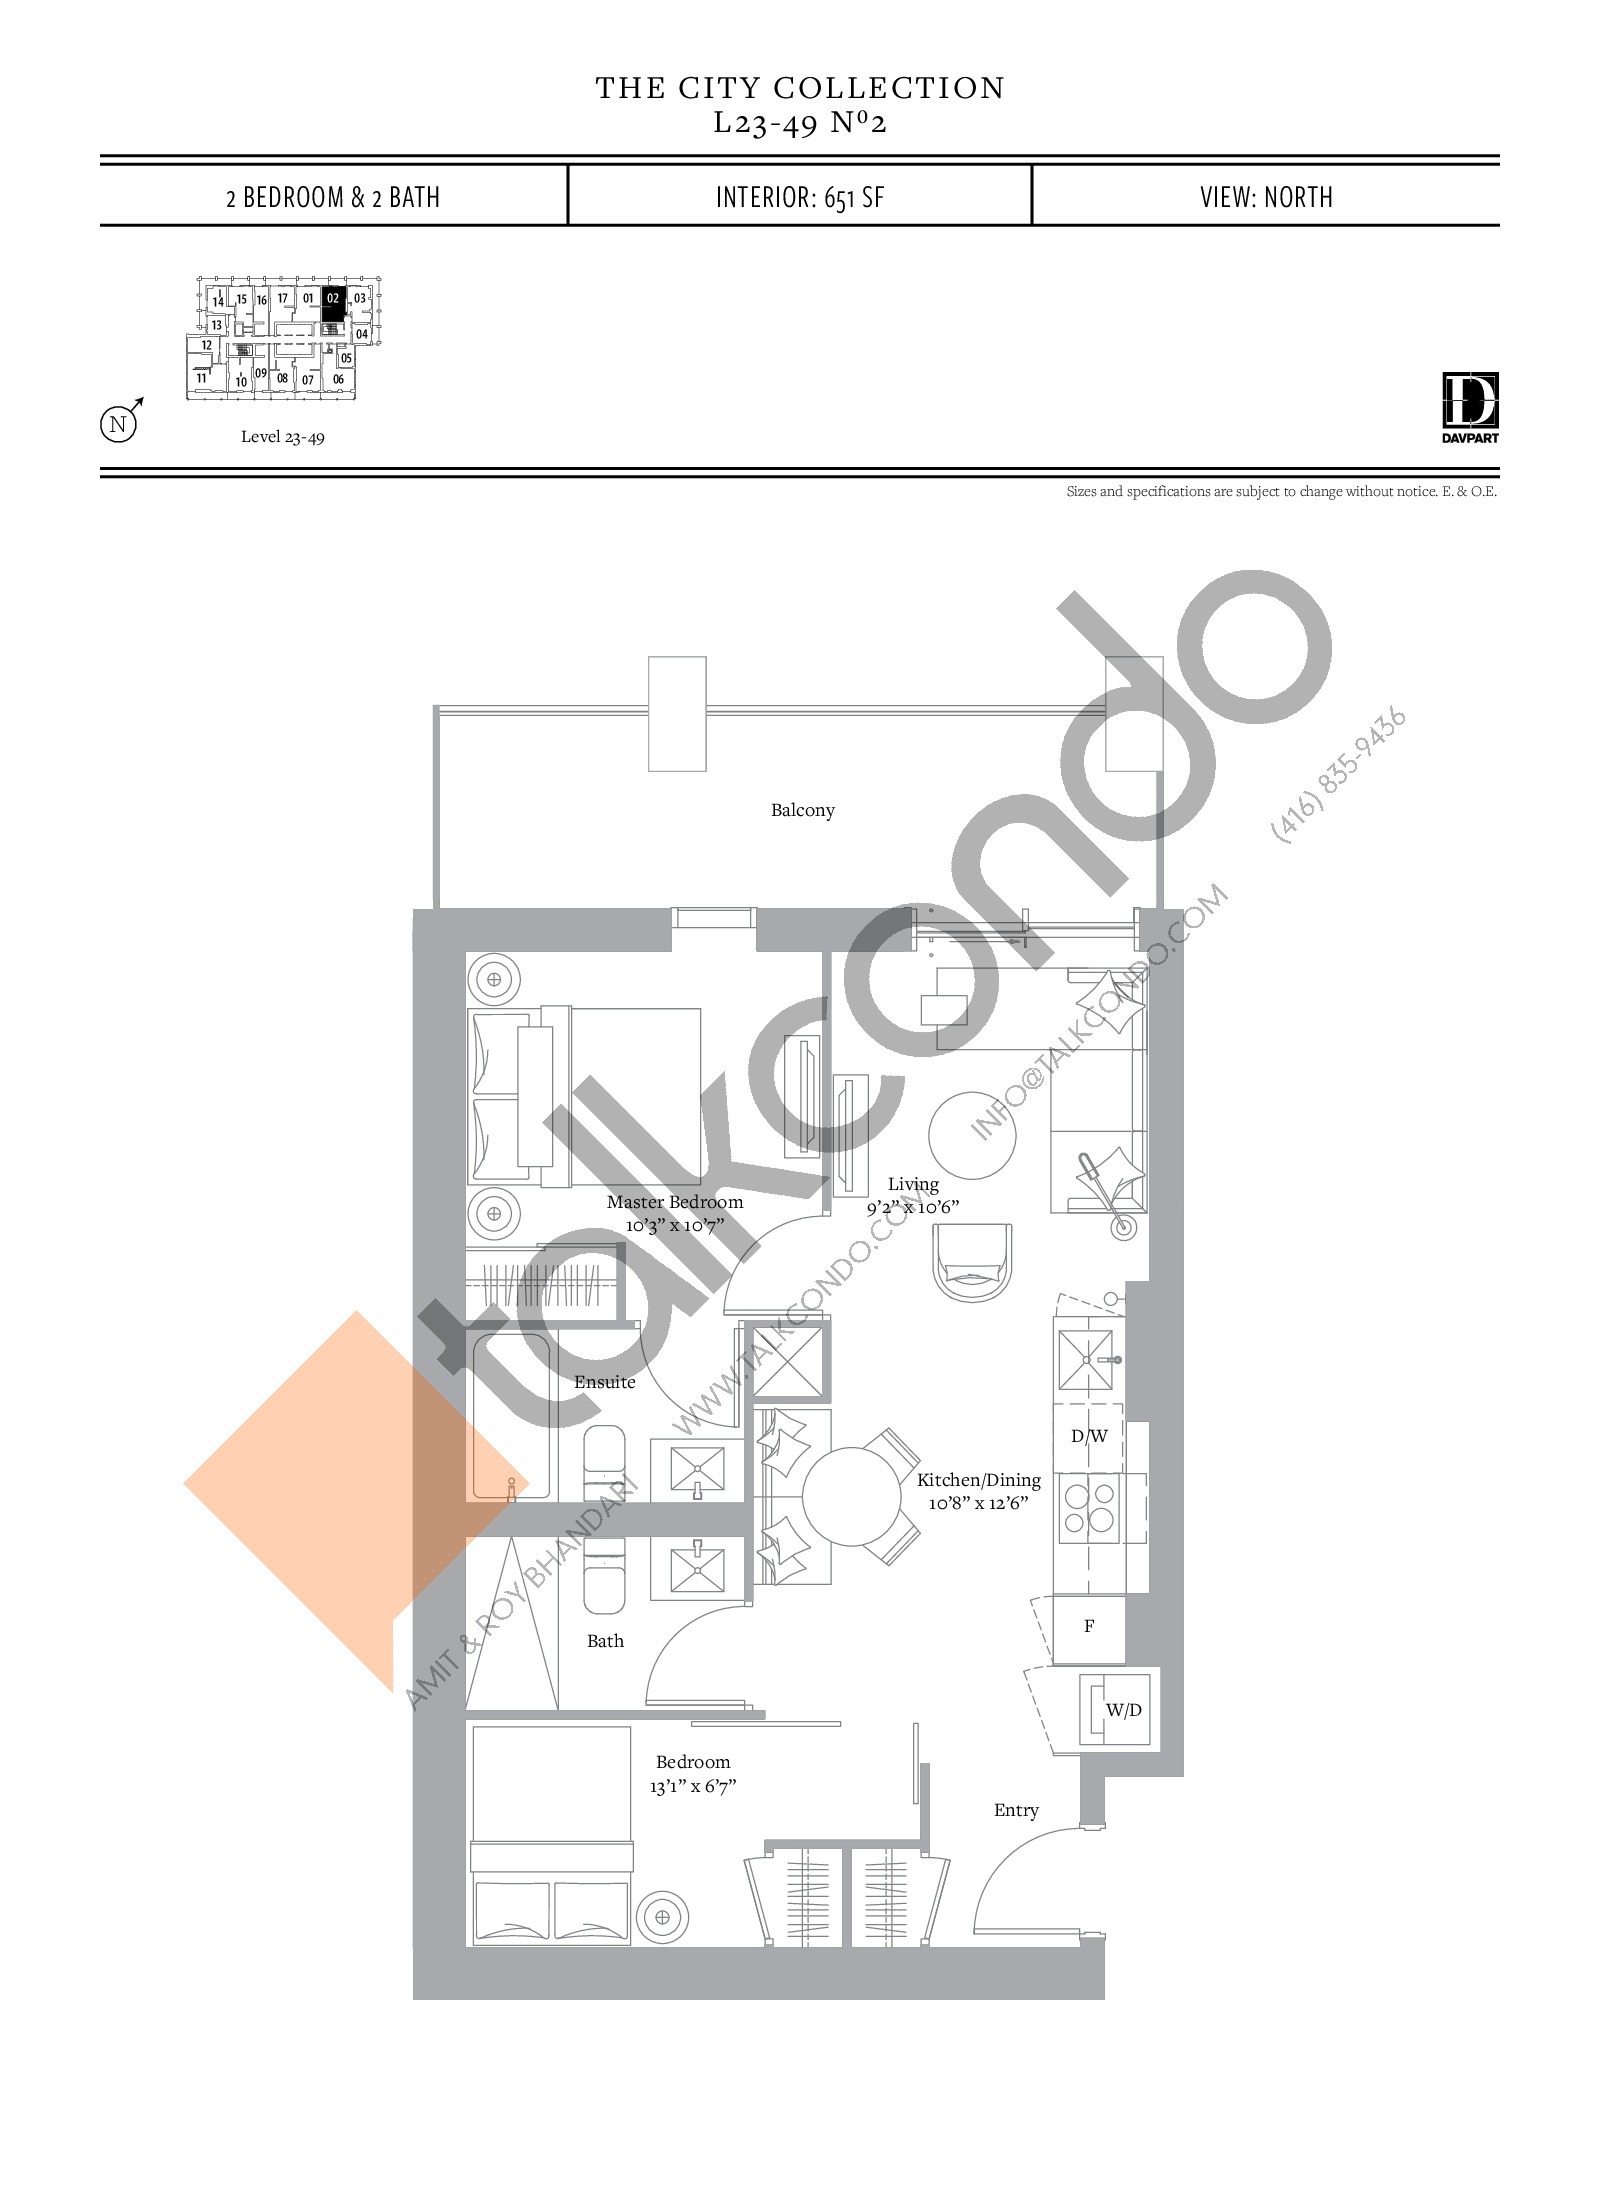 No 2 - The City Collection Floor Plan at The United Bldg. Condos - 651 sq.ft